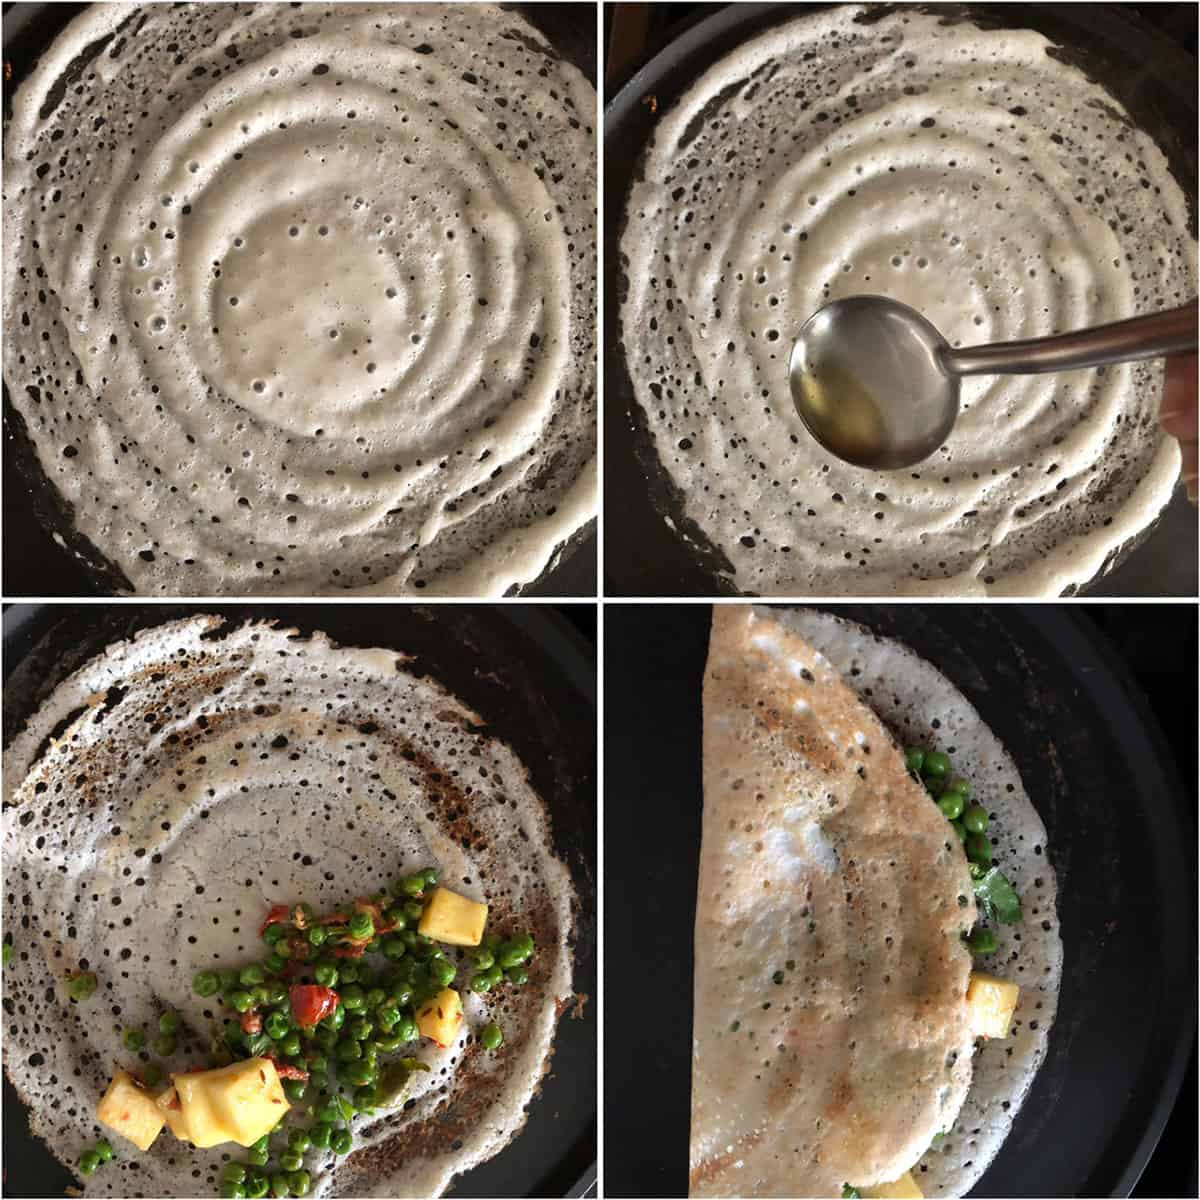 Step by step photos showing the making of savory crepe and filled with paneer